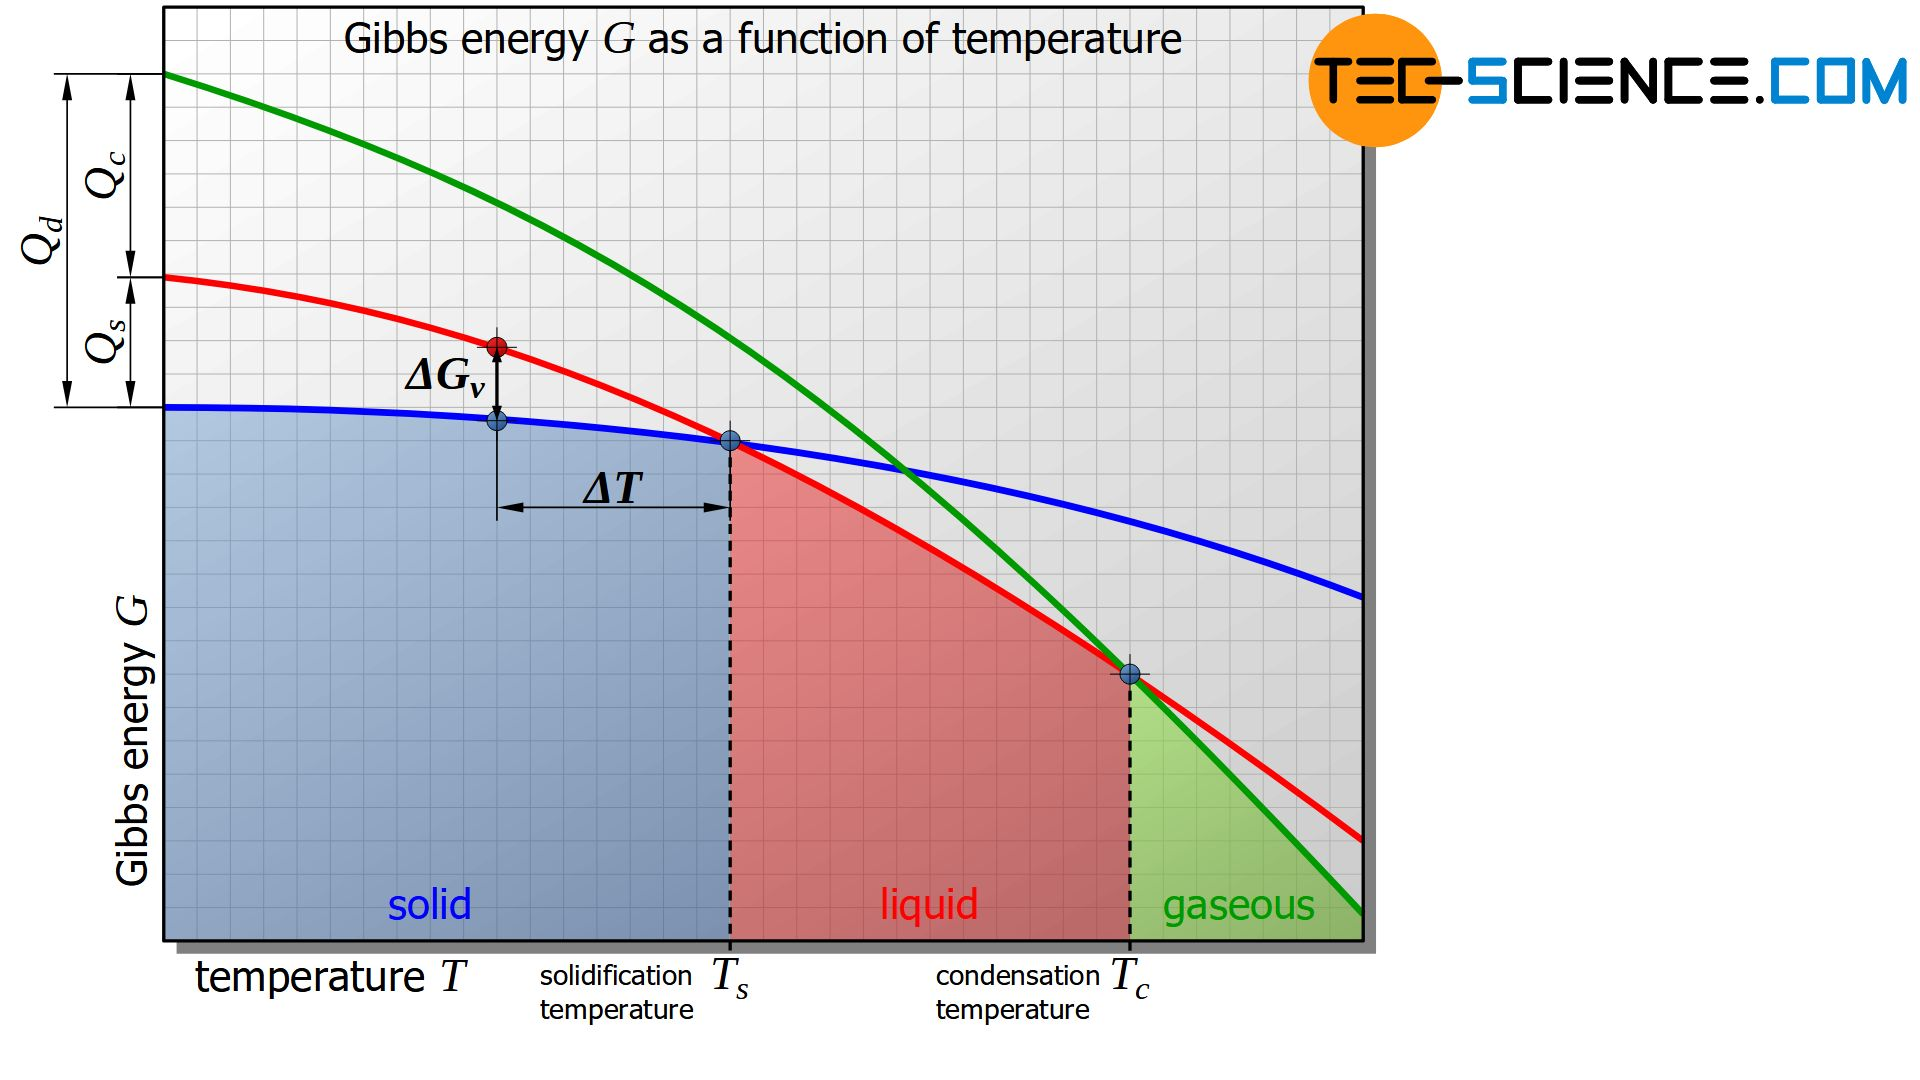 Gibbs energy as a function of temperature